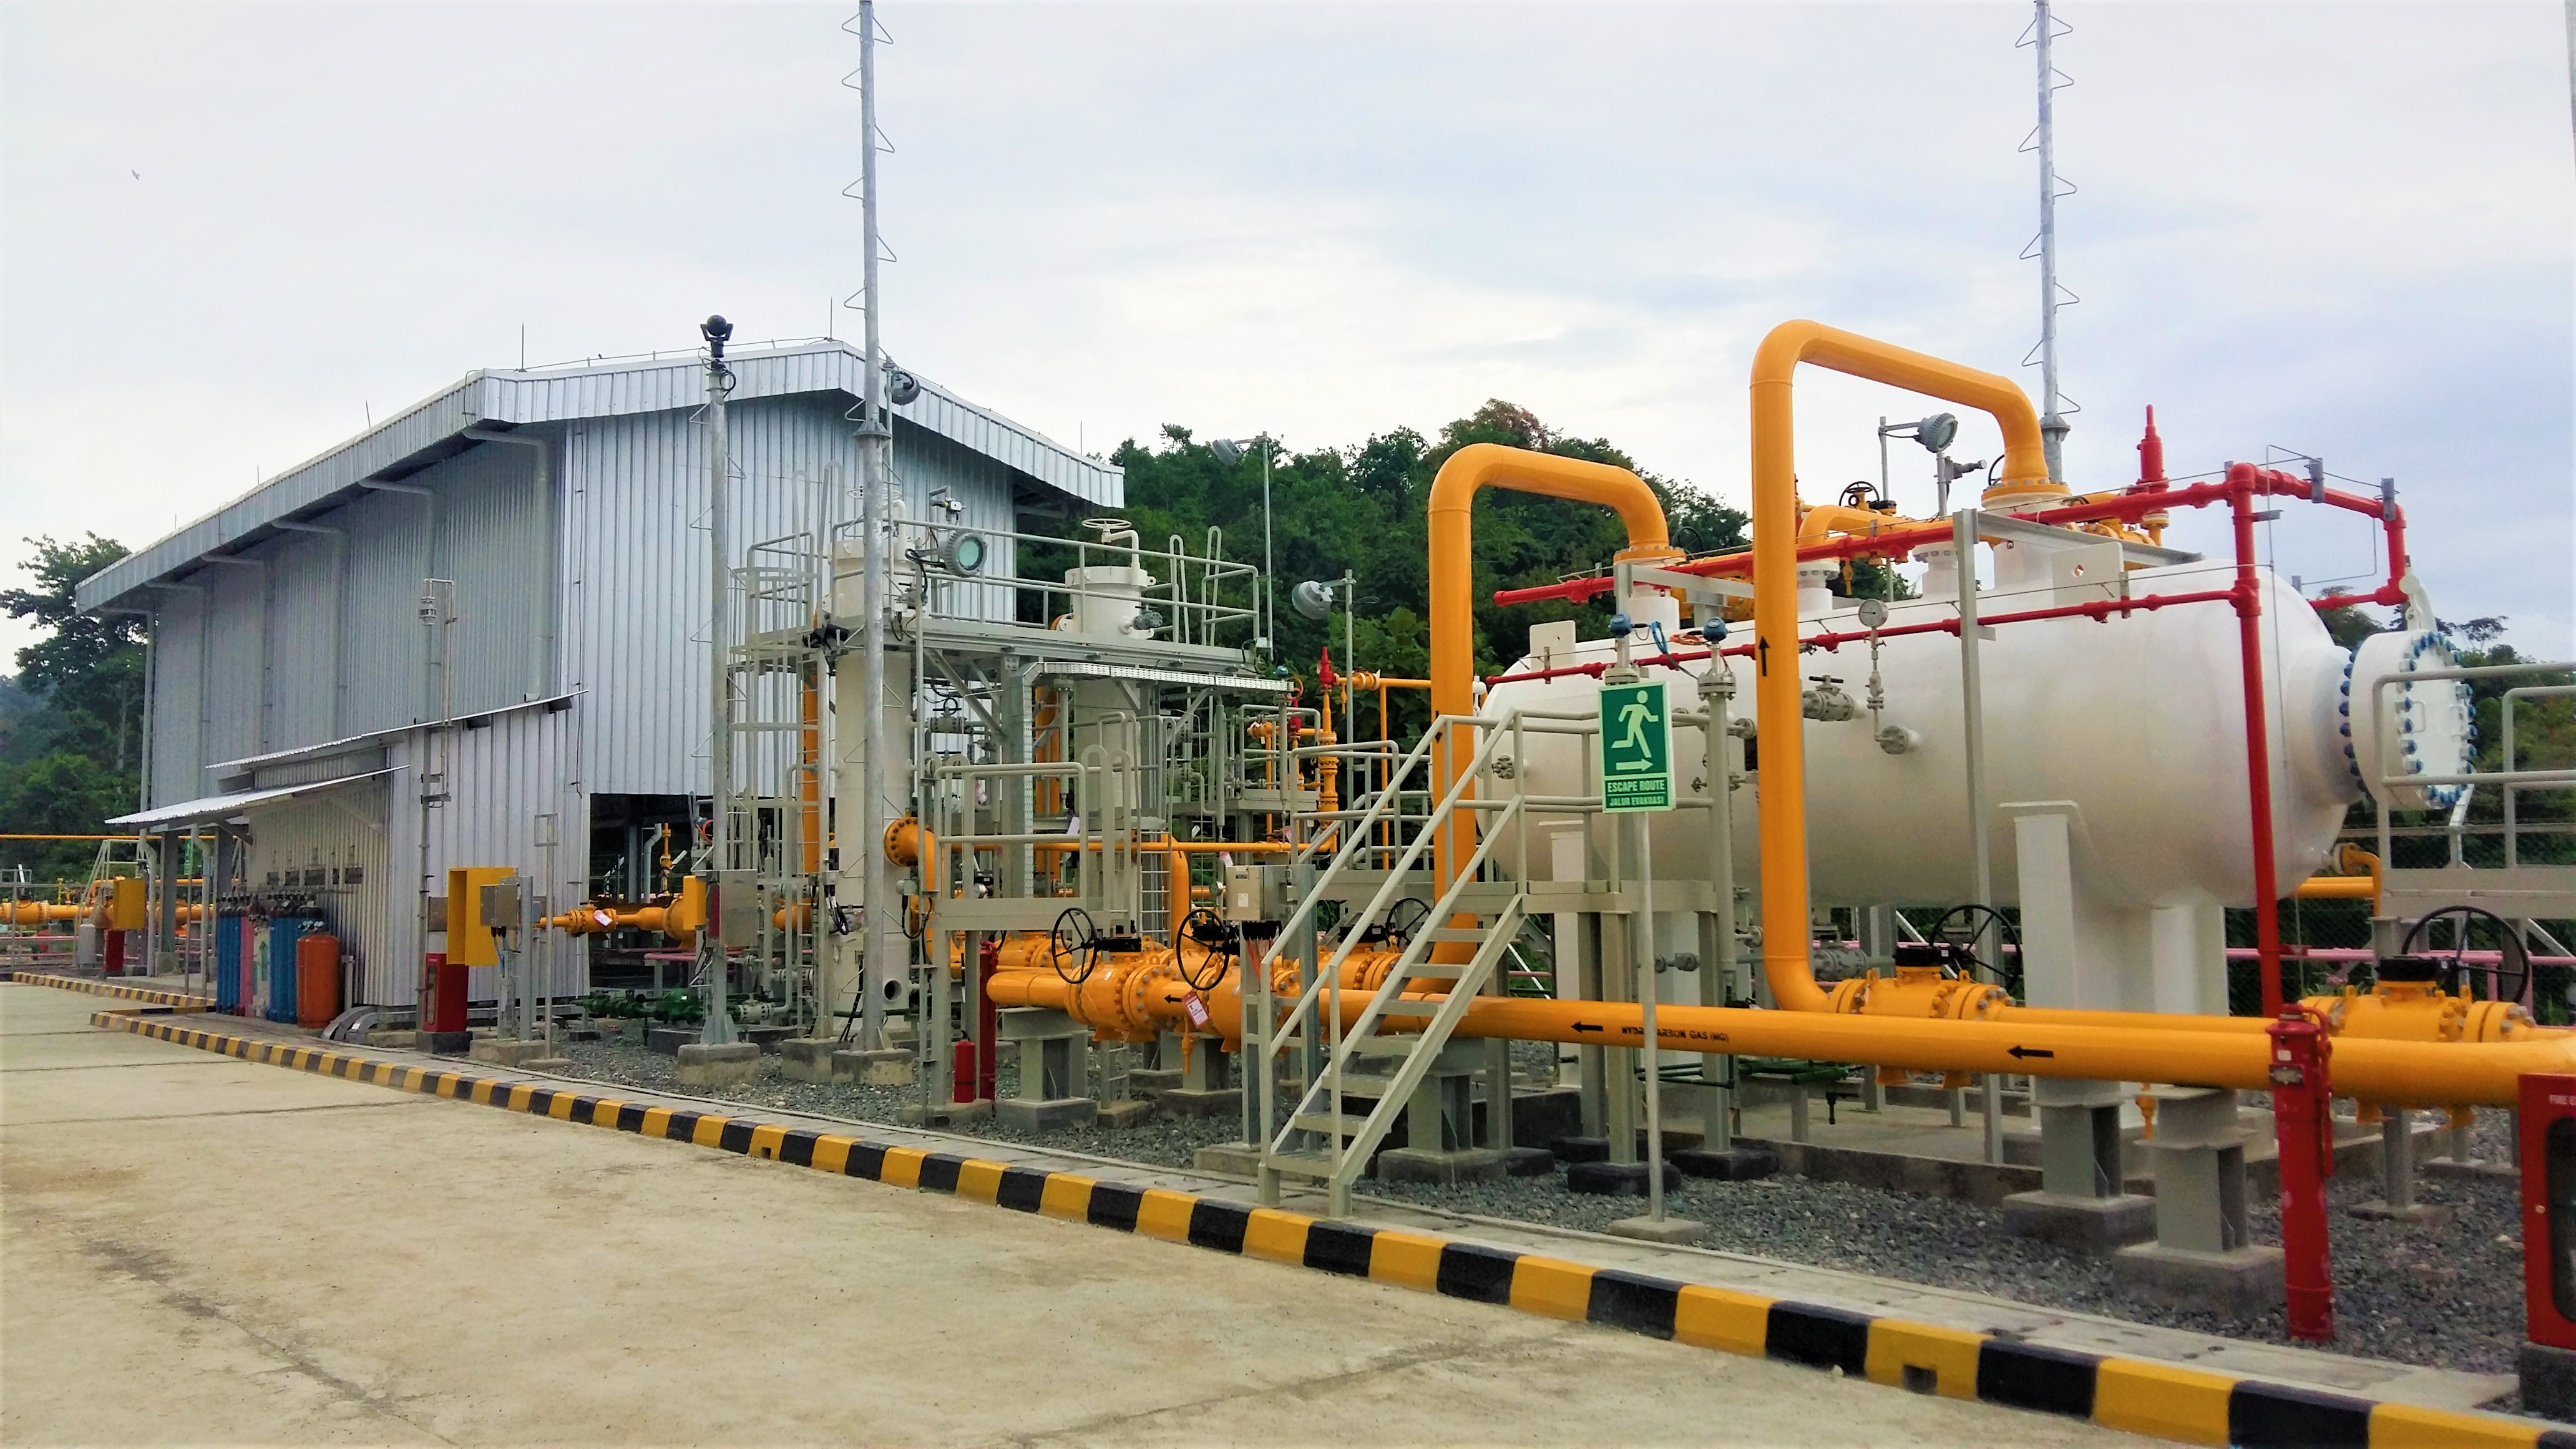 EPC Gas Measurement Facility Senoro - PAU (Integrated EPC Construction), 2016